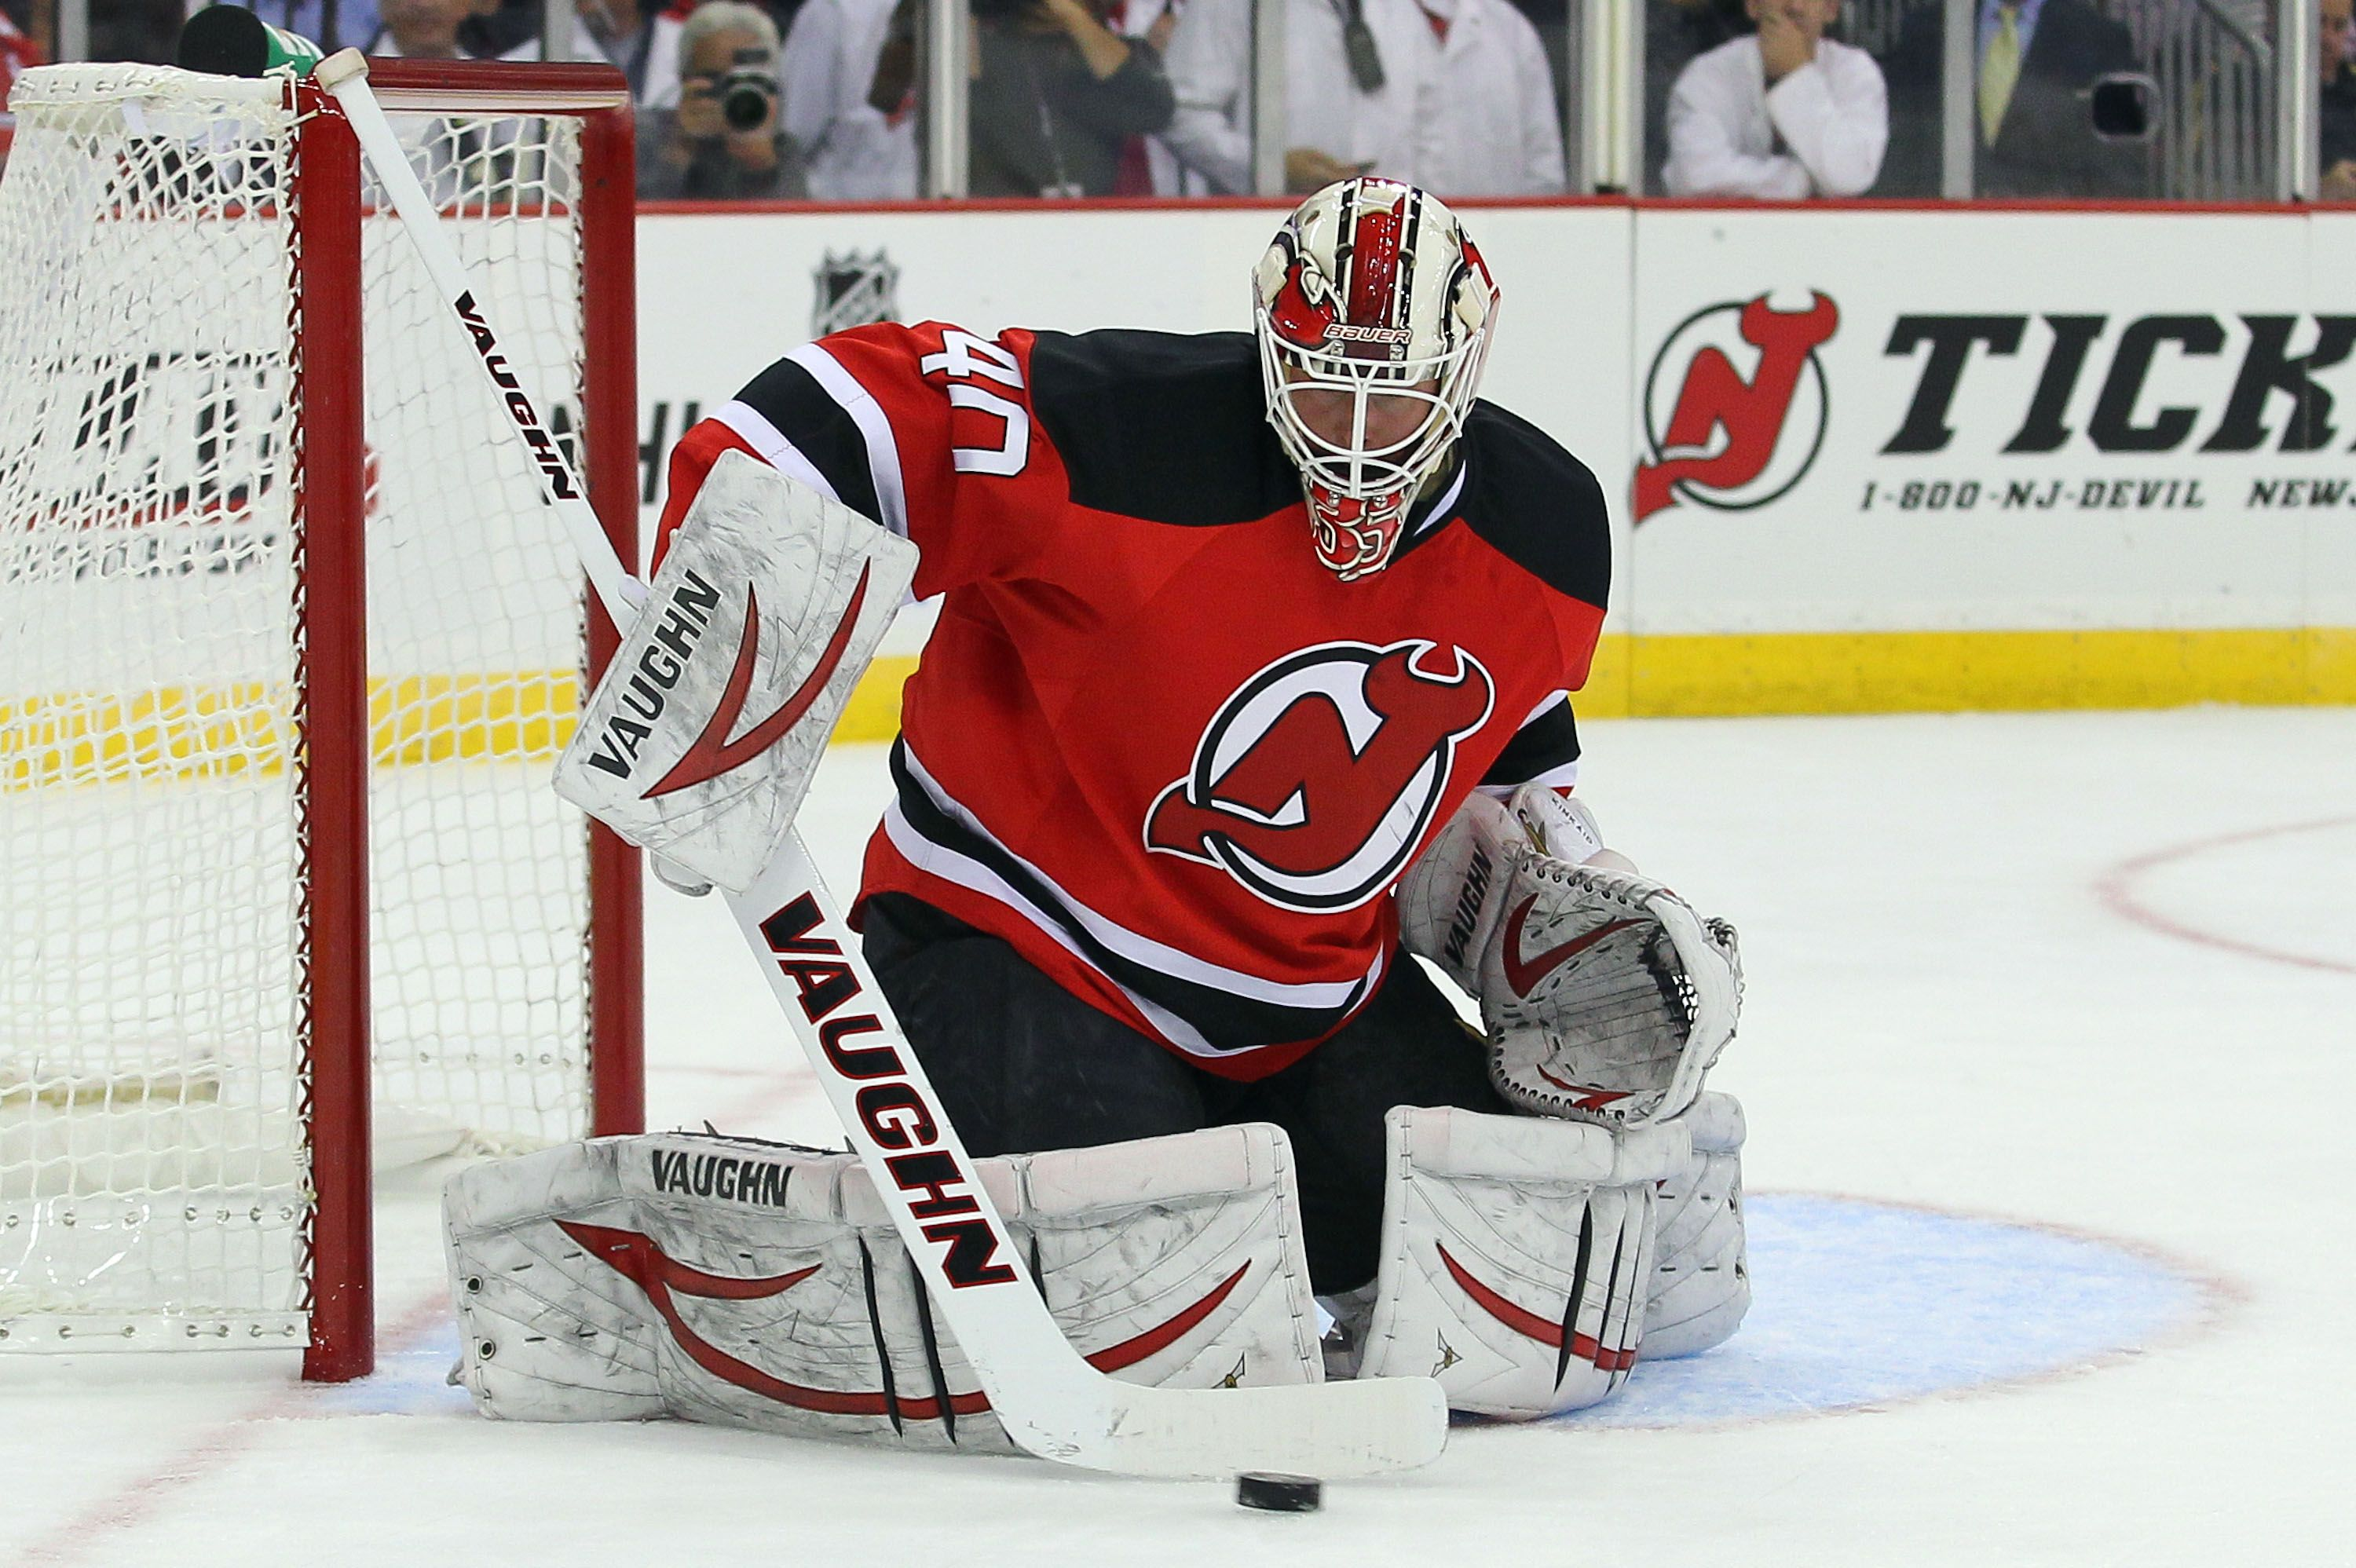 Crowdcam Hot Shot New Jersey Devils Goalie Keith Kinkaid